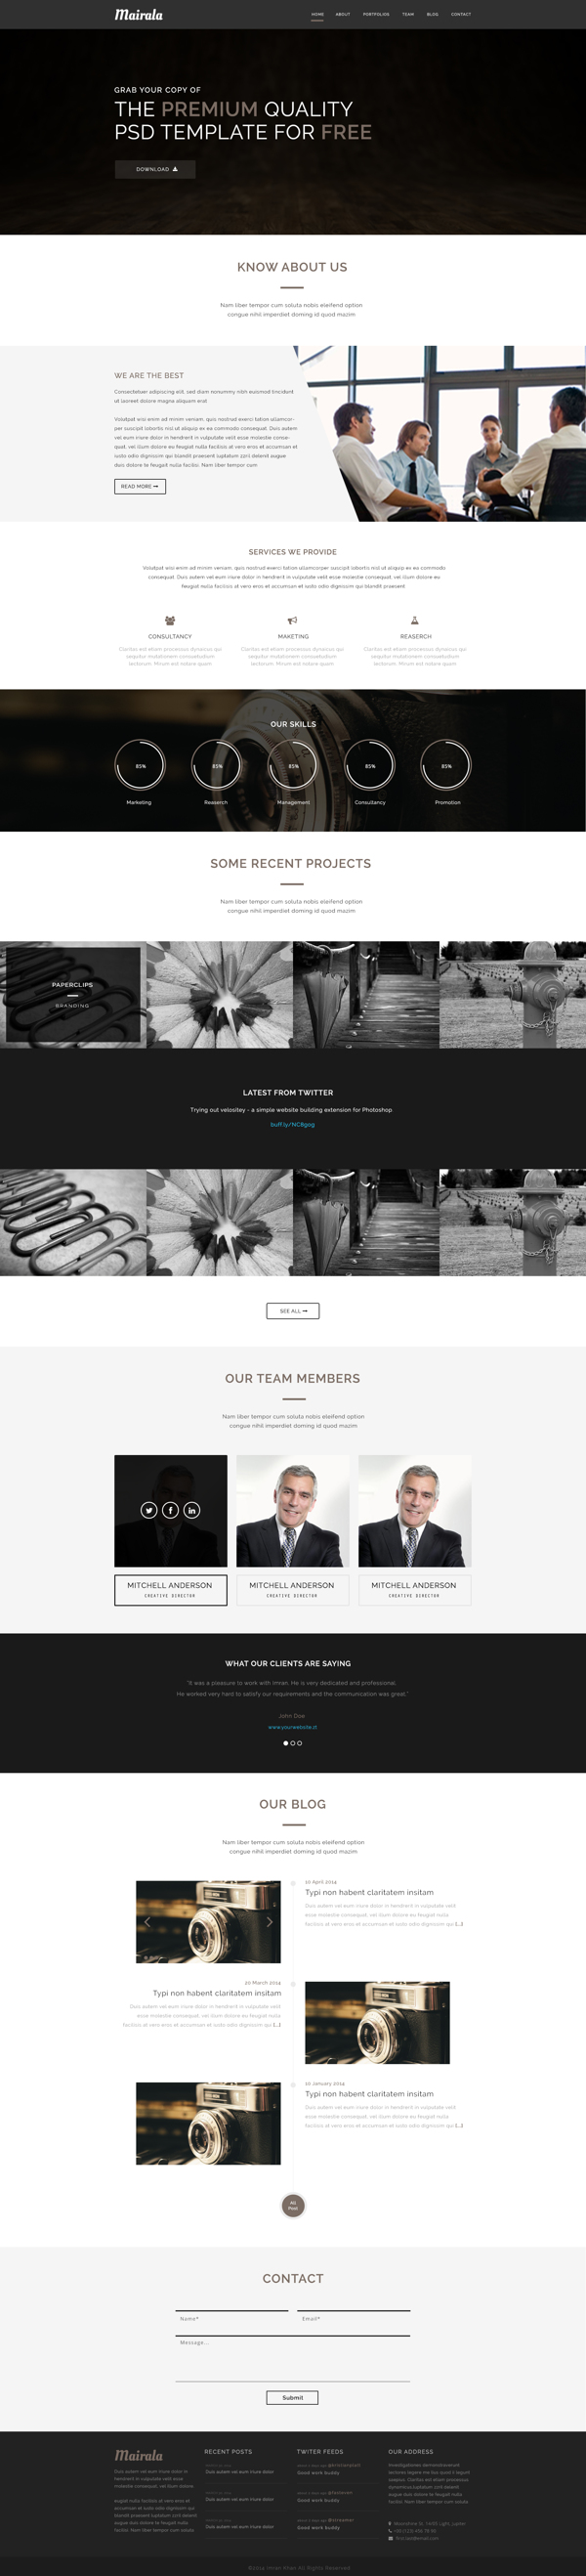 MAIRALA - Free One Page Corporate Agency PSD Template